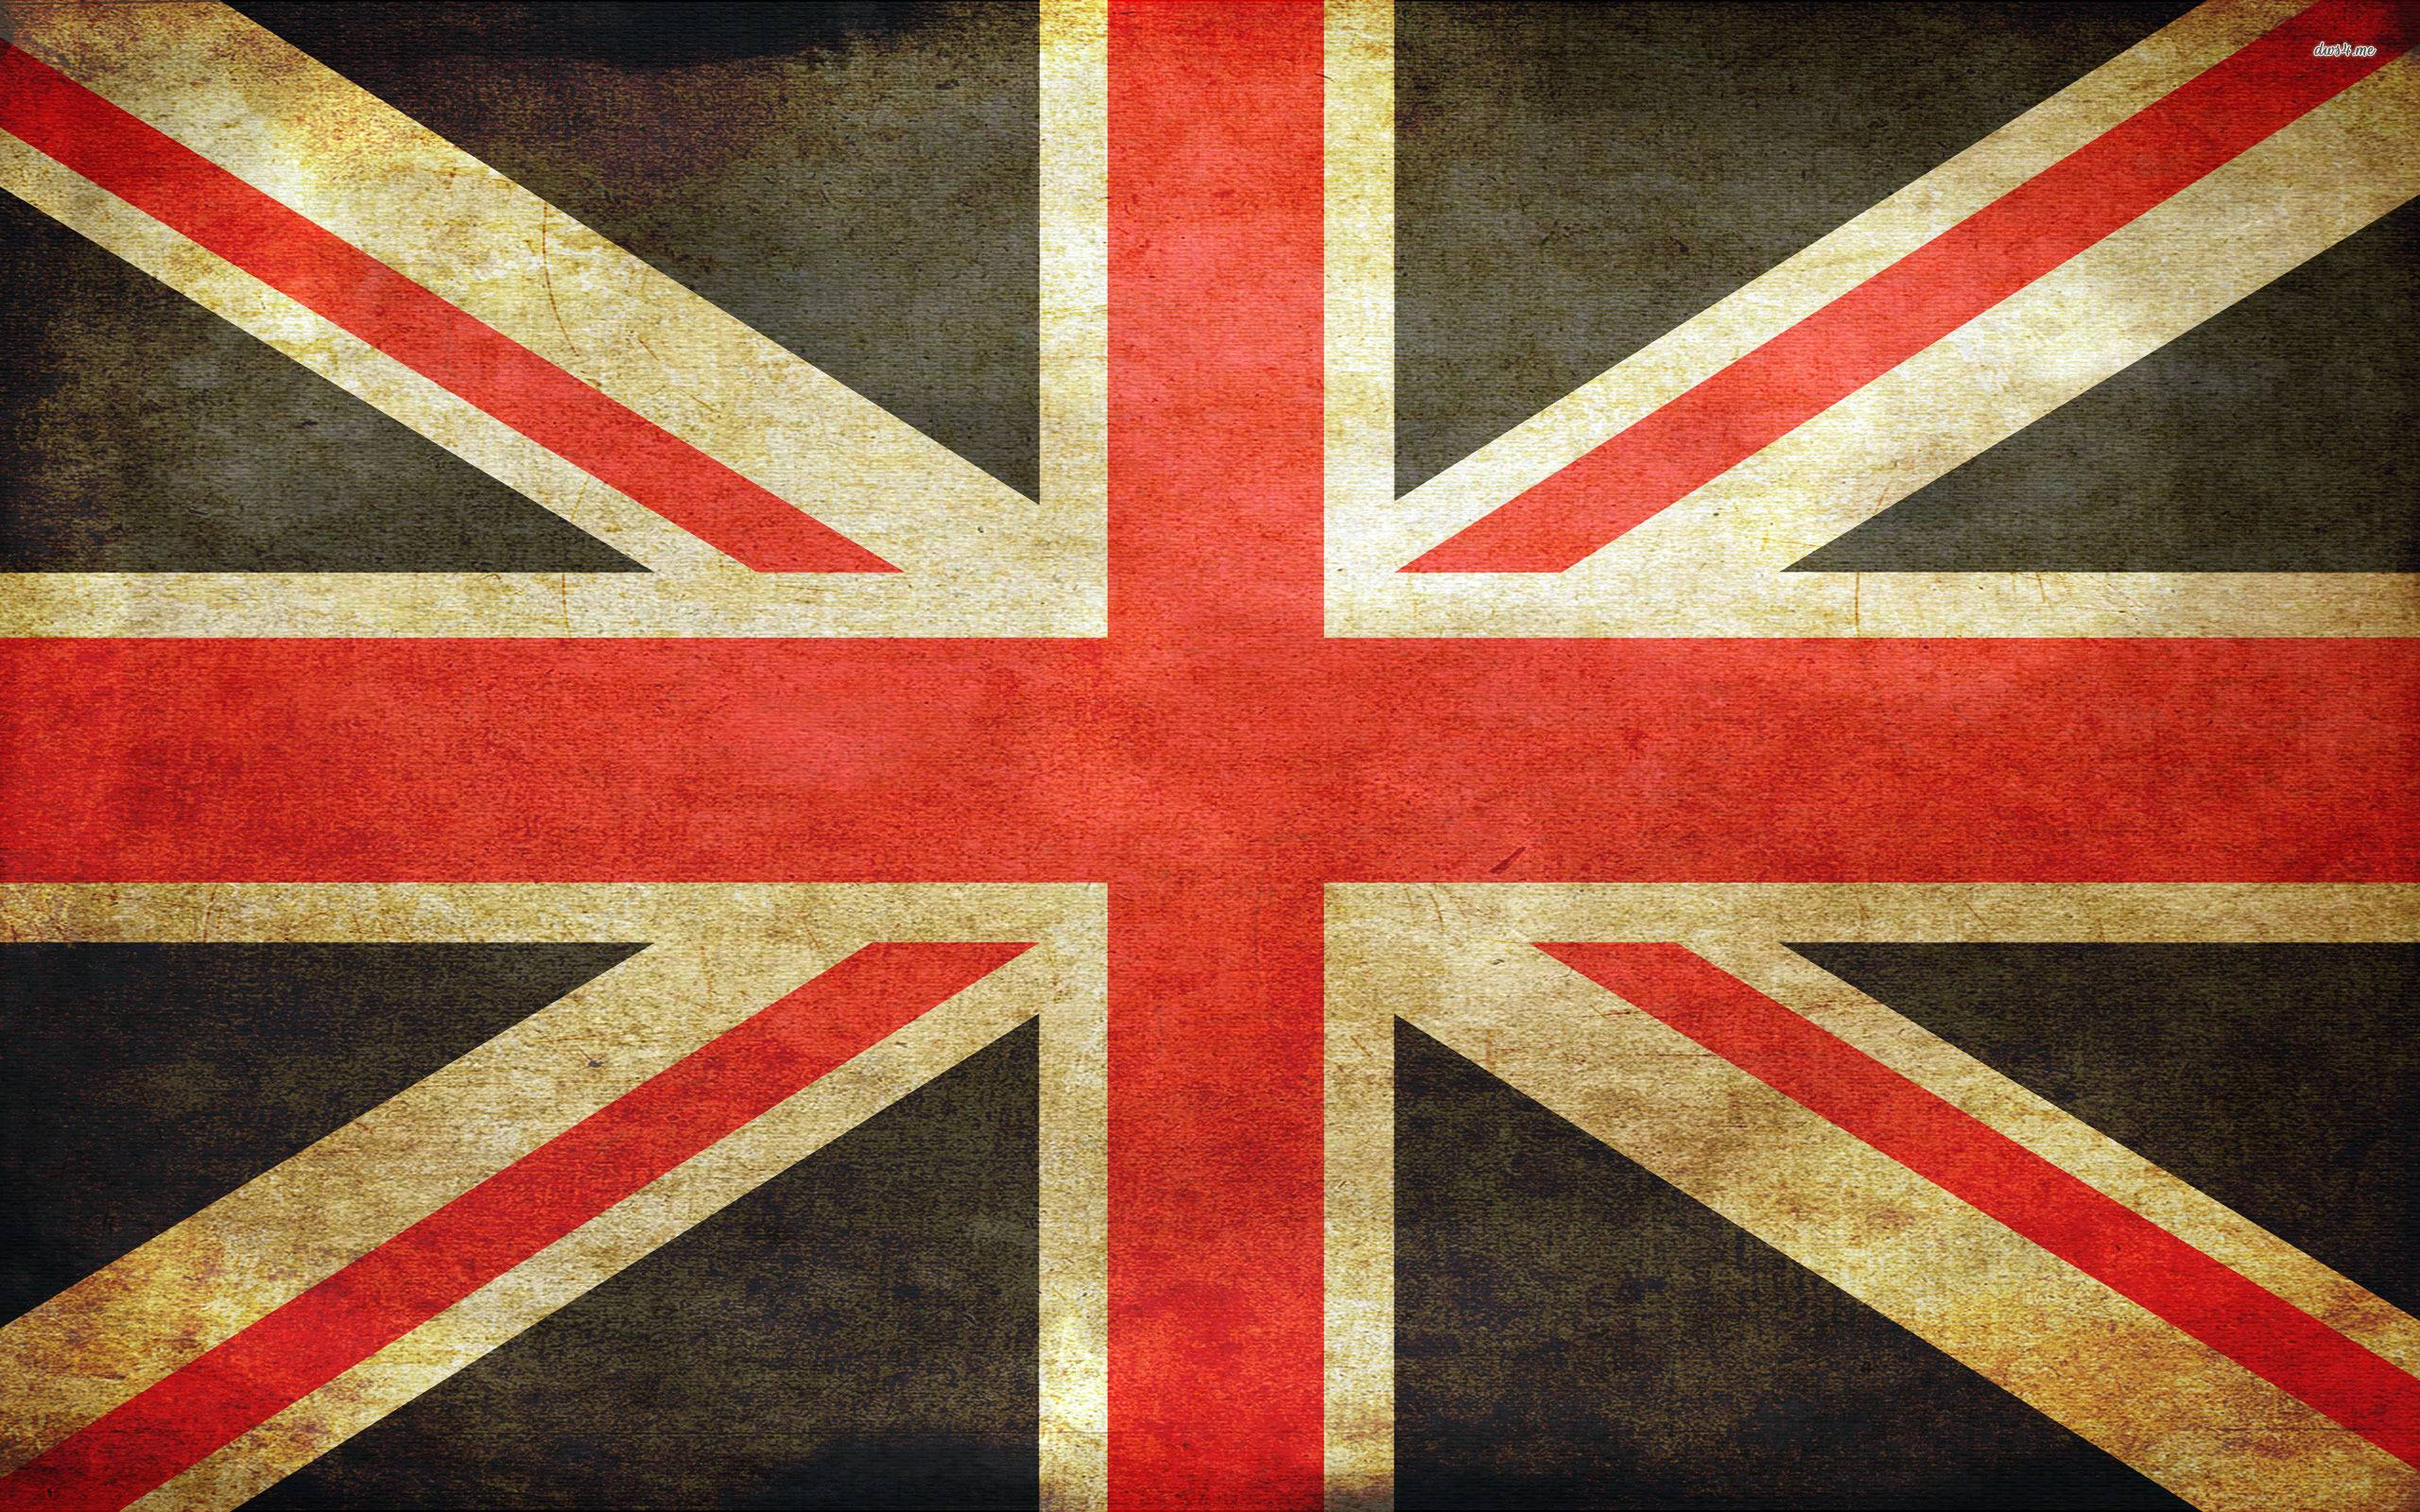 United Kingdom flag wallpaper - Digital Art wallpapers - #